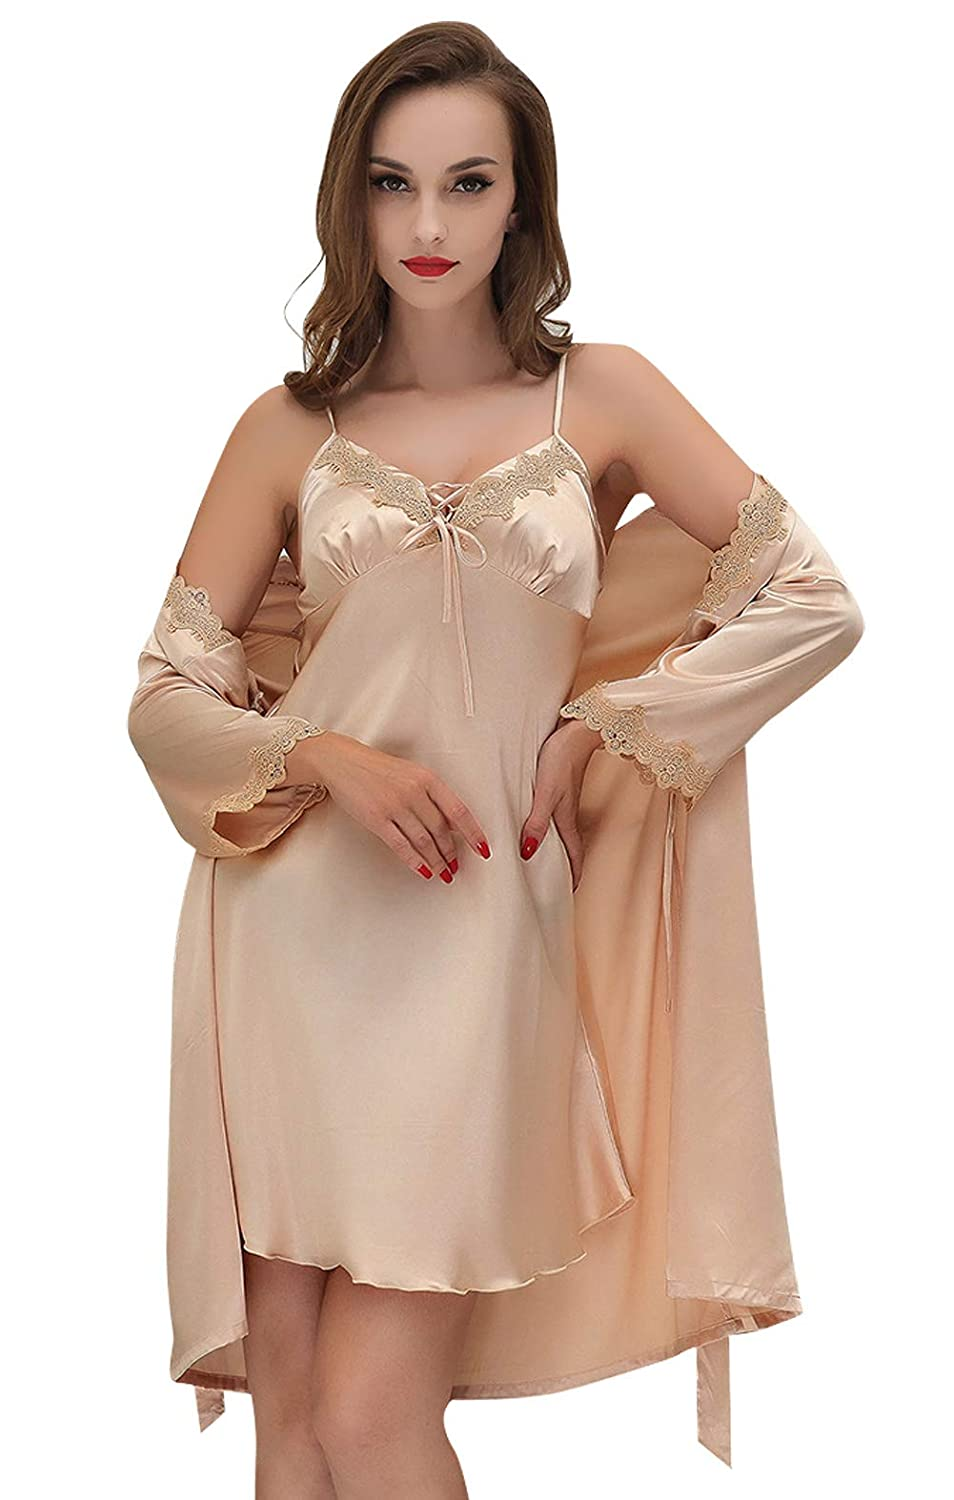 Aivtalk Womens Half Sleeve Satin Pajama Set 2 Piece Robe and Nightgown Set at Amazon Womens Clothing store: